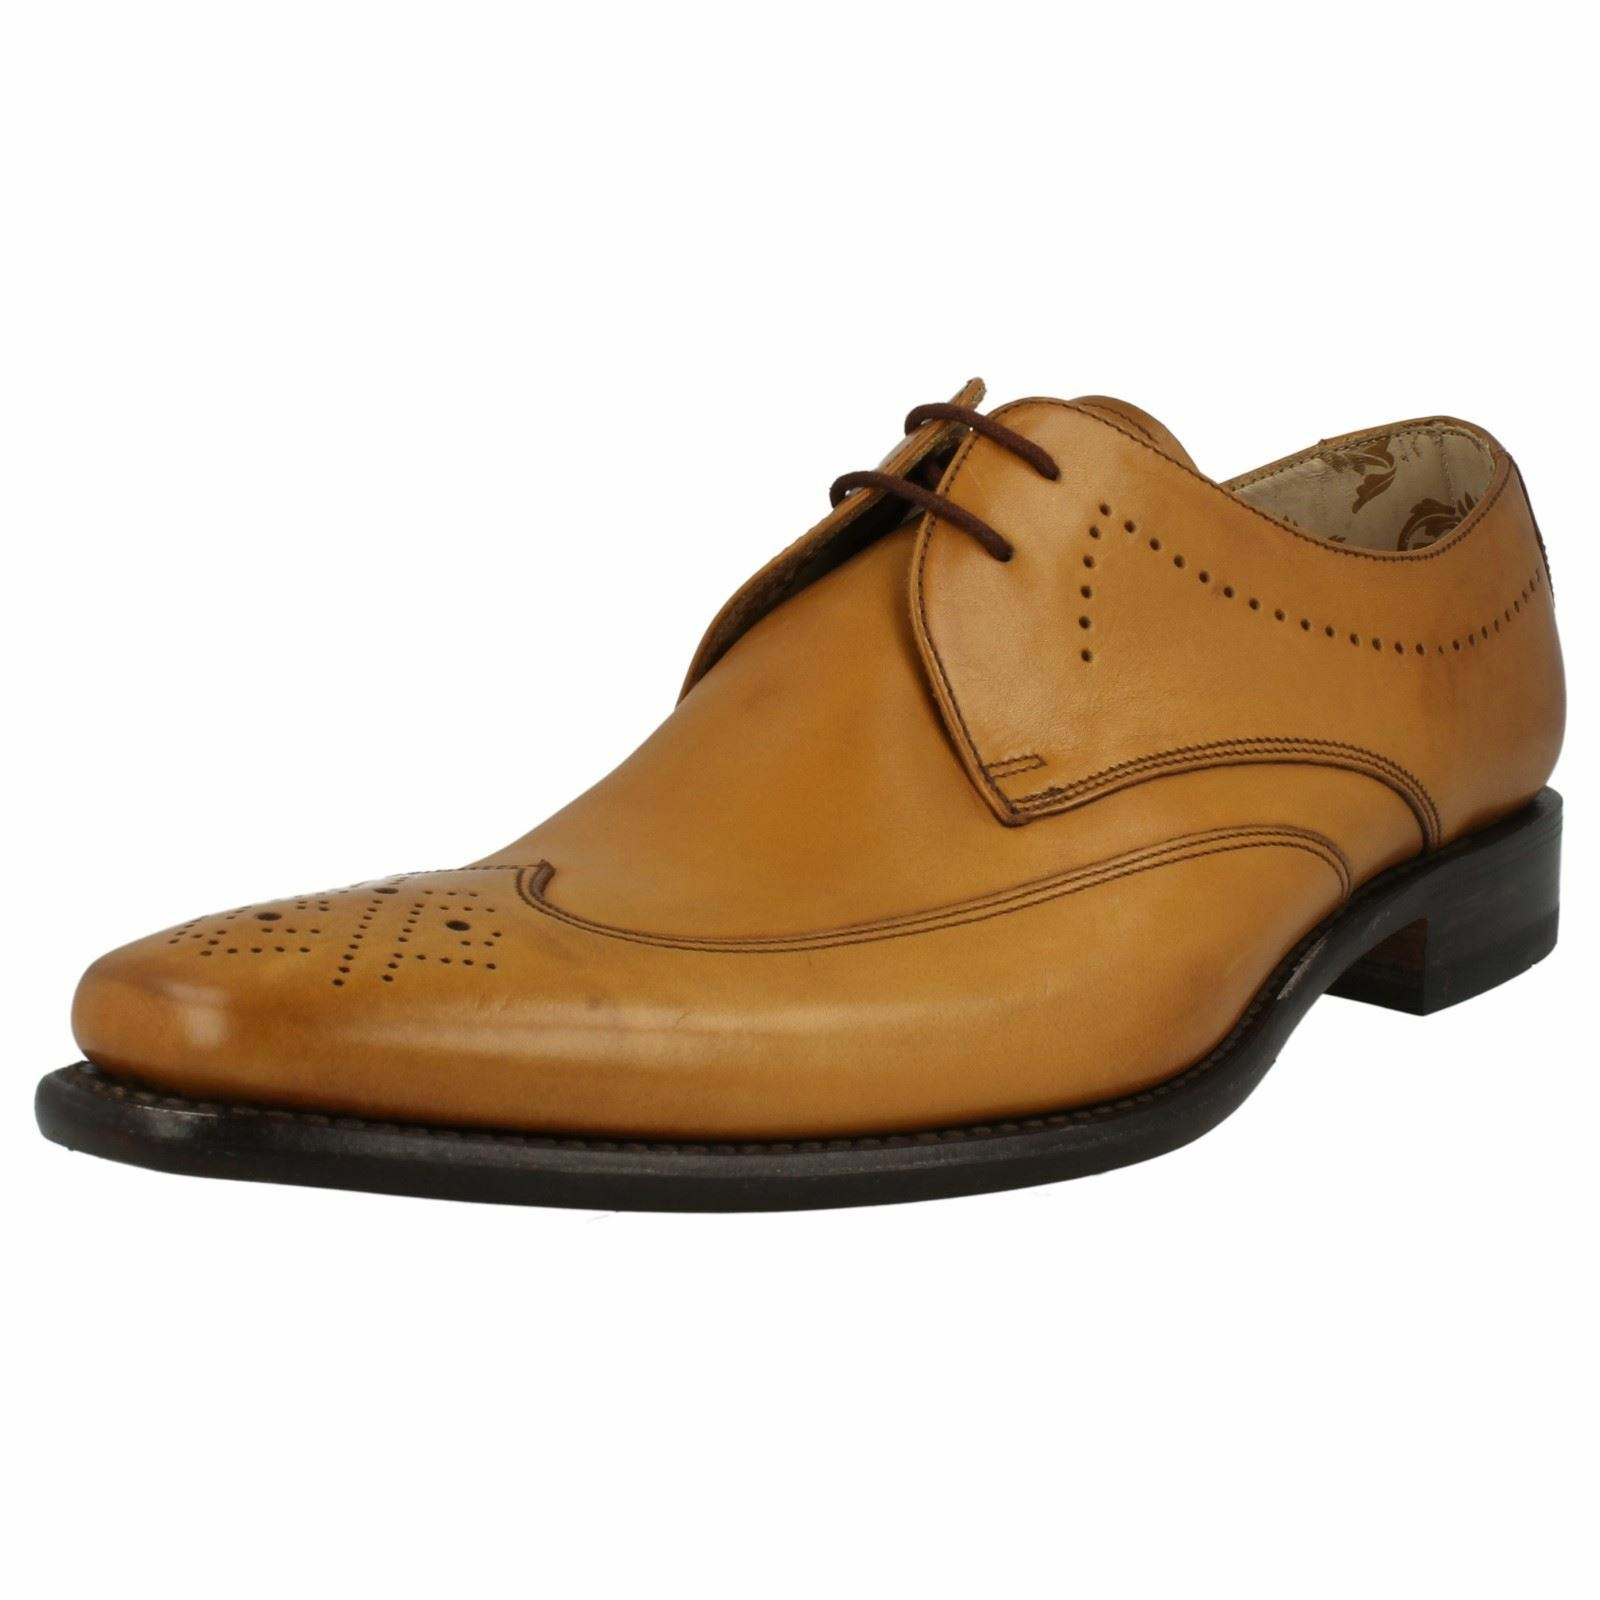 Design Loake Stitch Marrone Chiaro Stringati In Pelle Derby Brogue Scarpe Scarpe classiche da uomo